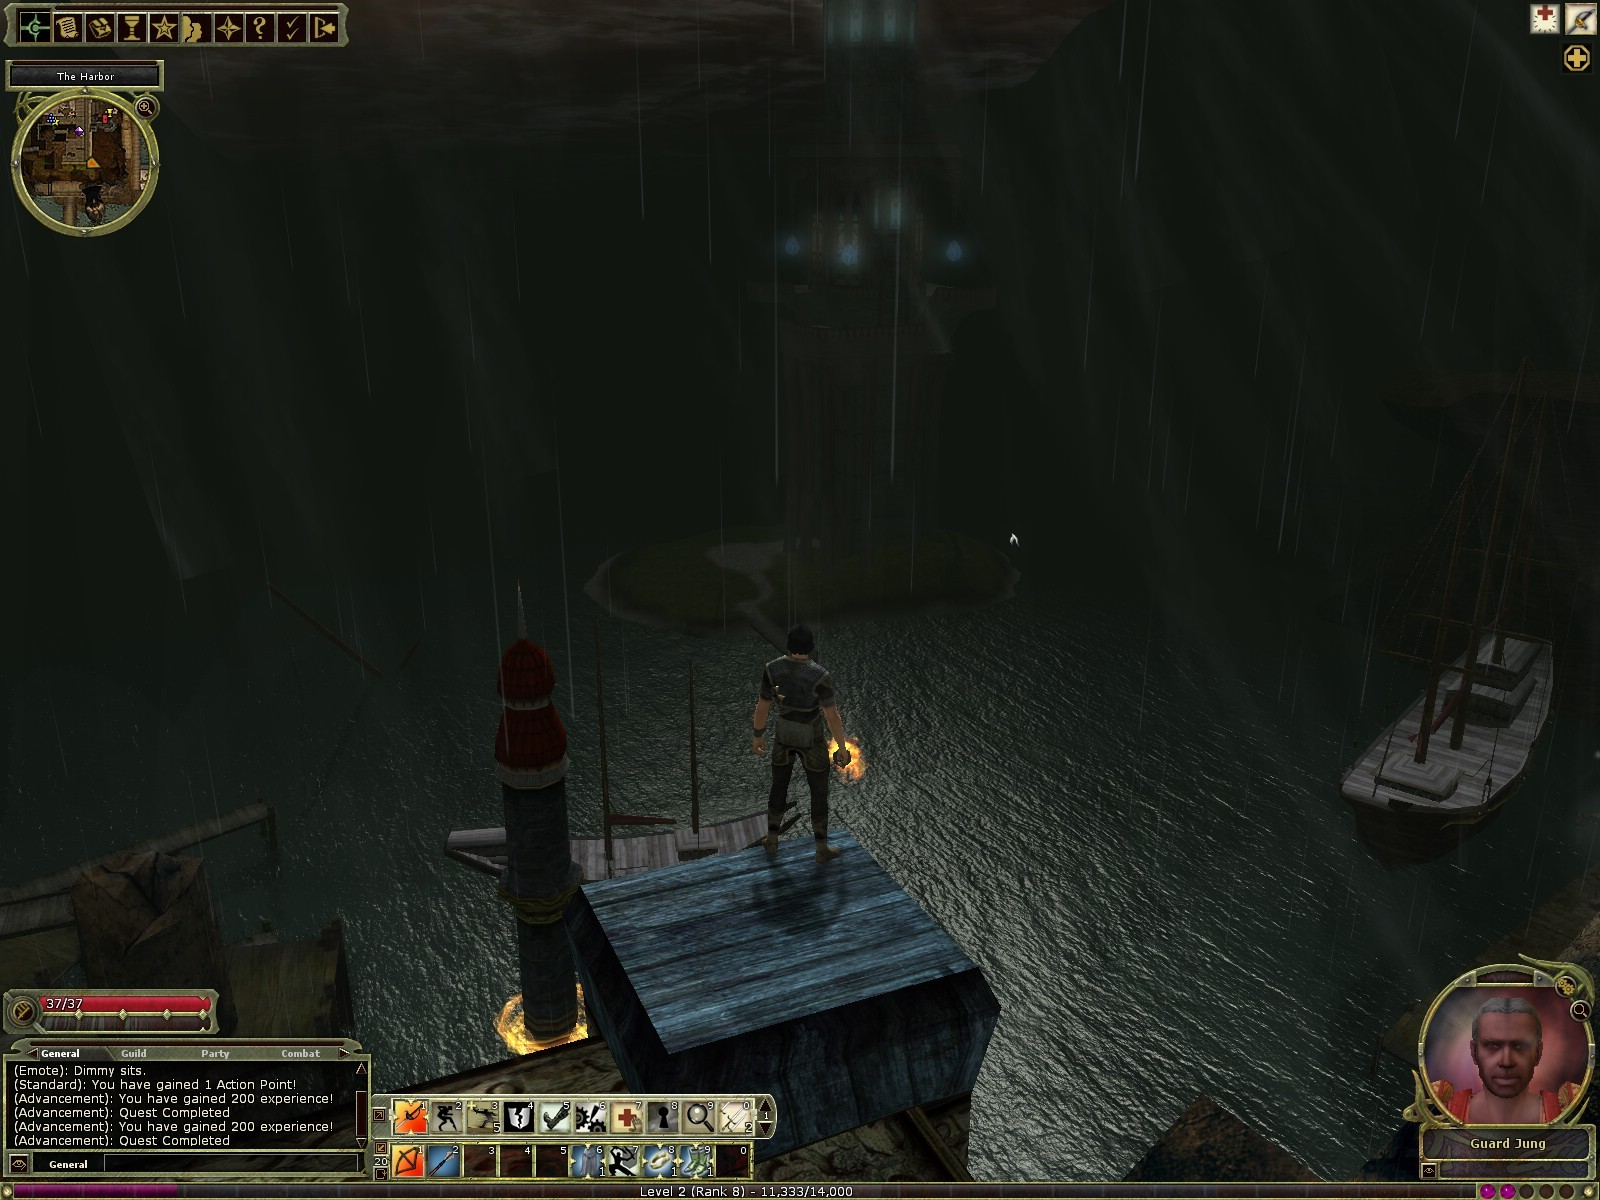 Dungeons & Dragons Online - DDO: At night, look from the Harbor cliff